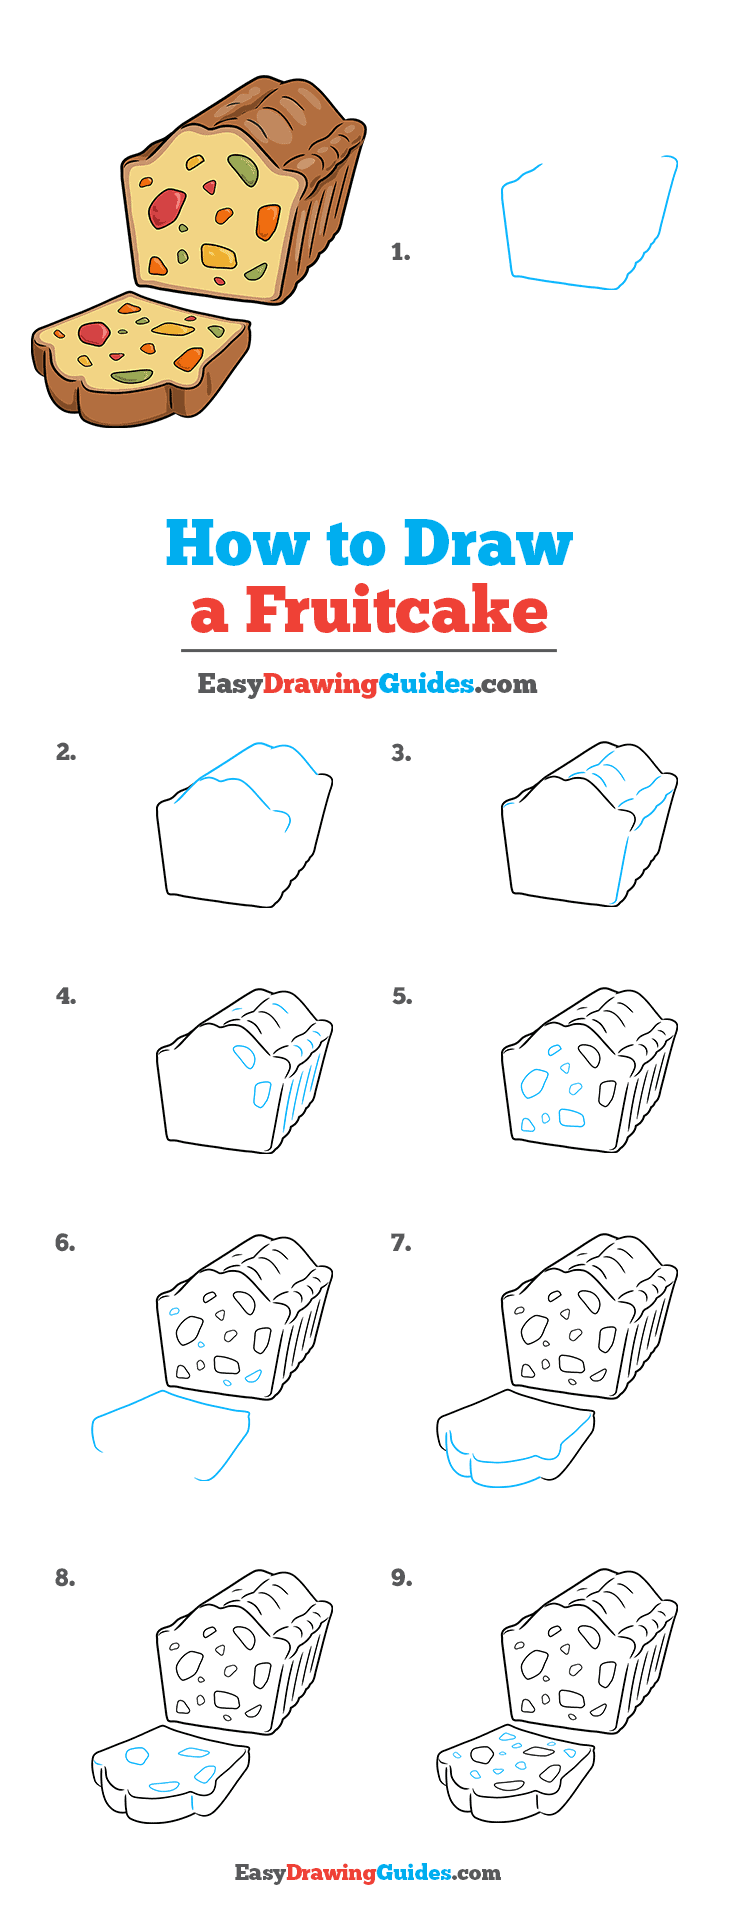 How to Draw a Fruitcake Step by Step Tutorial Image